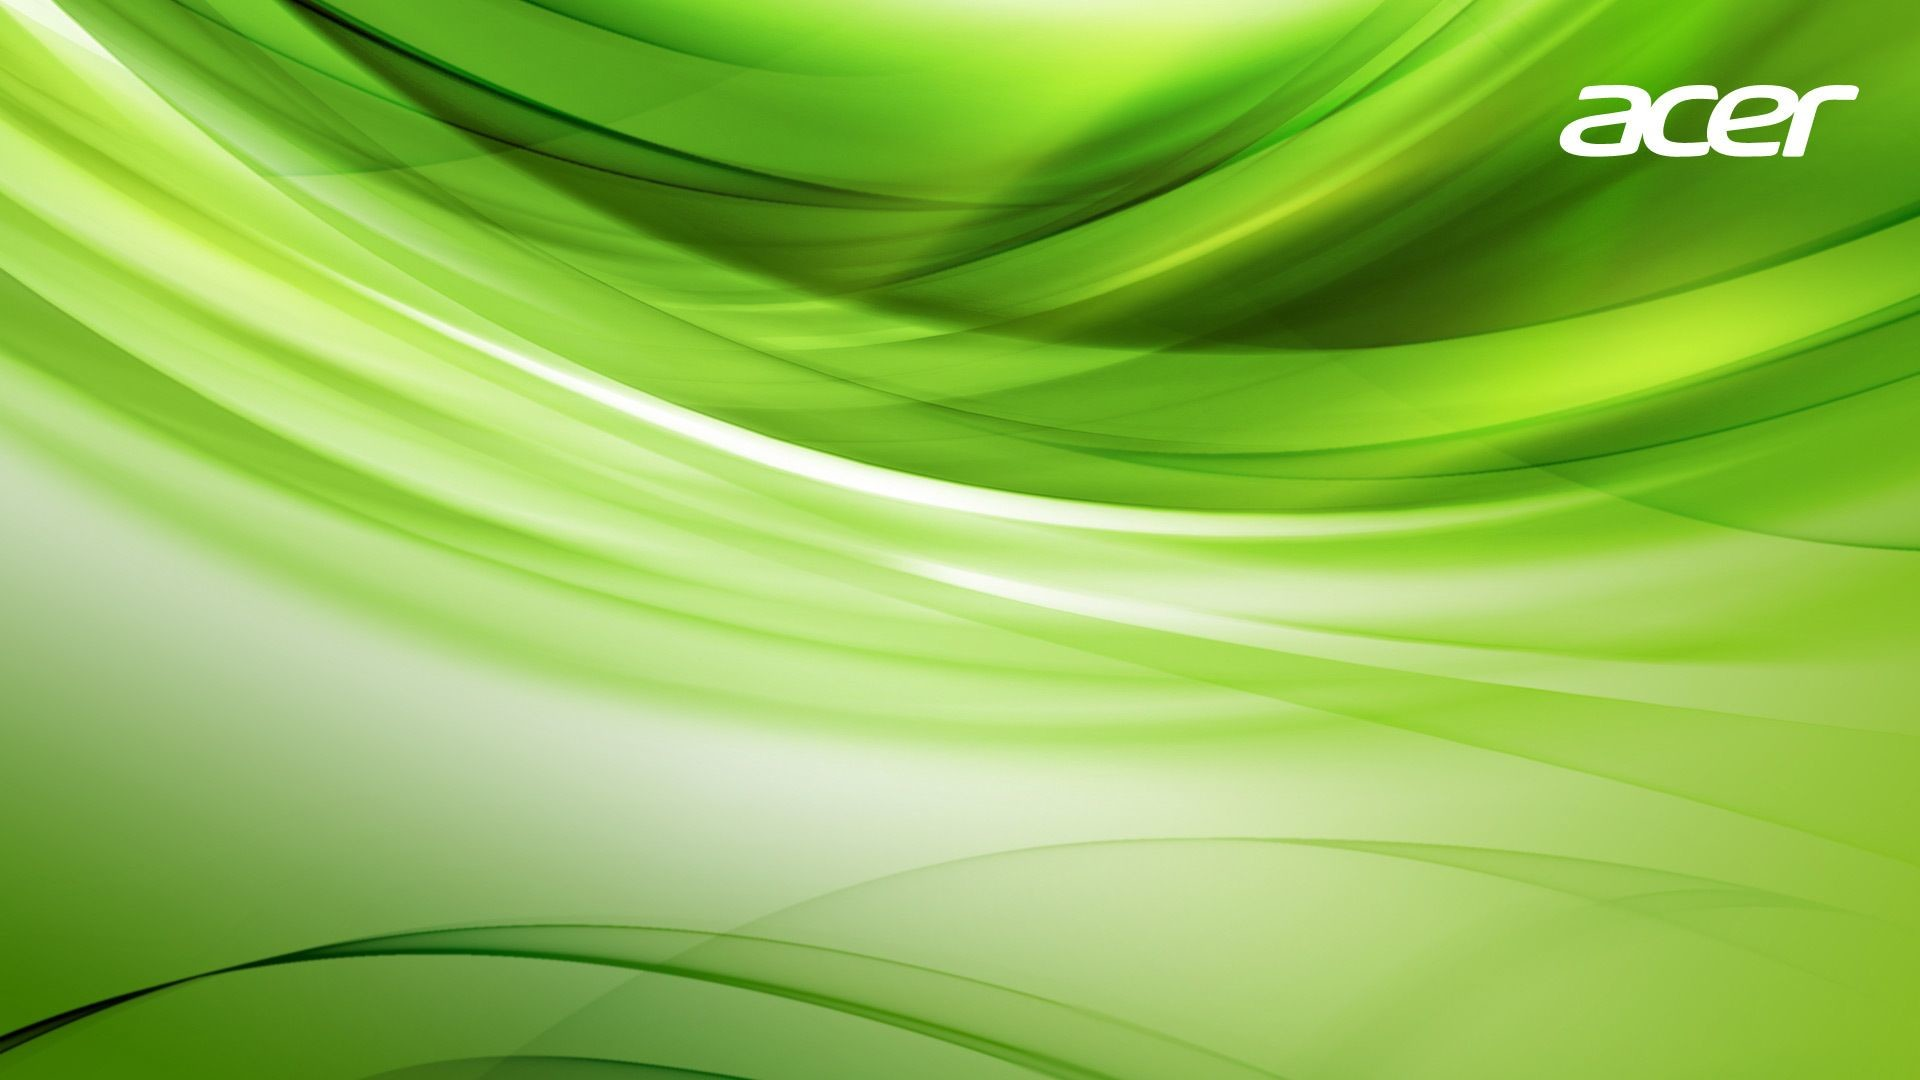 Solved: Acer Aspire S Windows Stock Wallpapers Acer Community Acer Logo Wallpapers  Wallpapers)